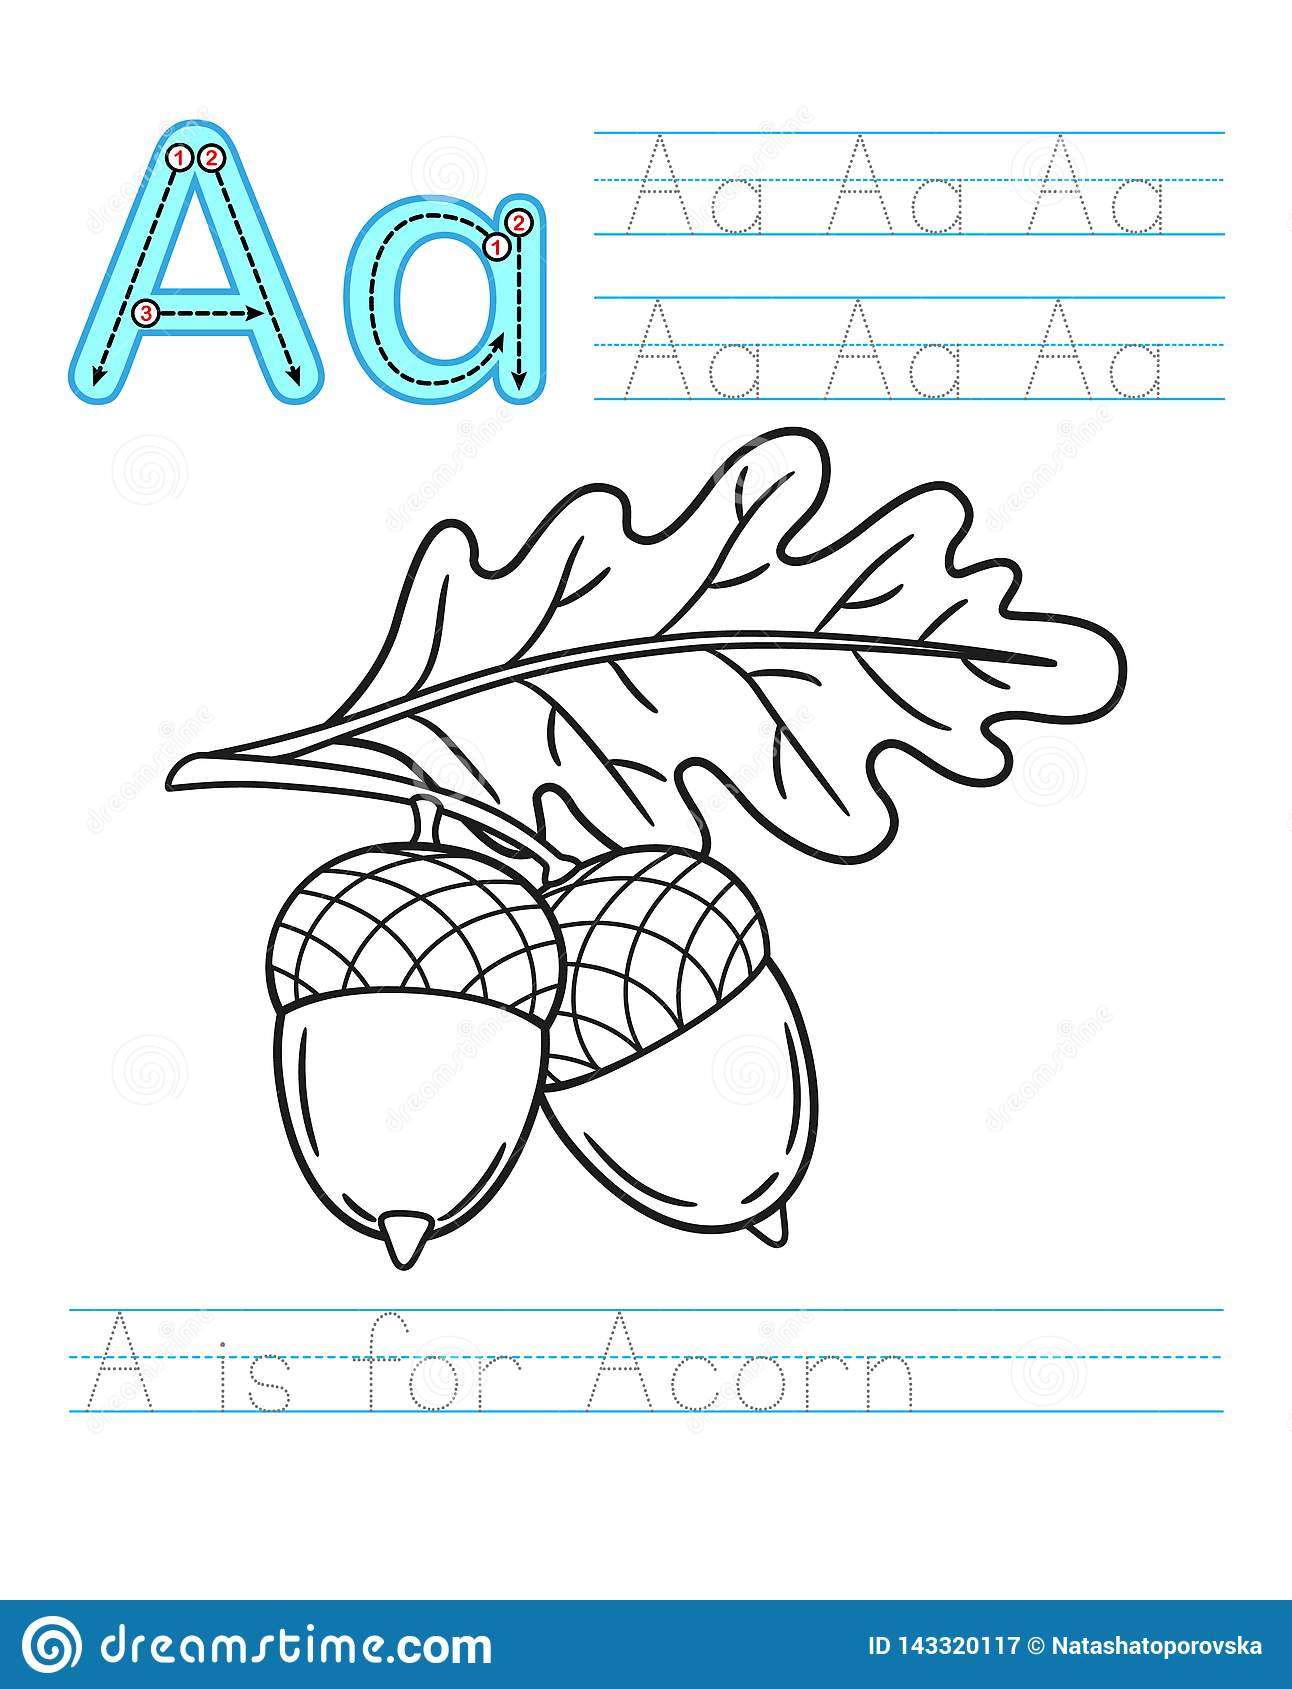 It is a graphic of Printable Letter Books for Kindergarten pertaining to workbook